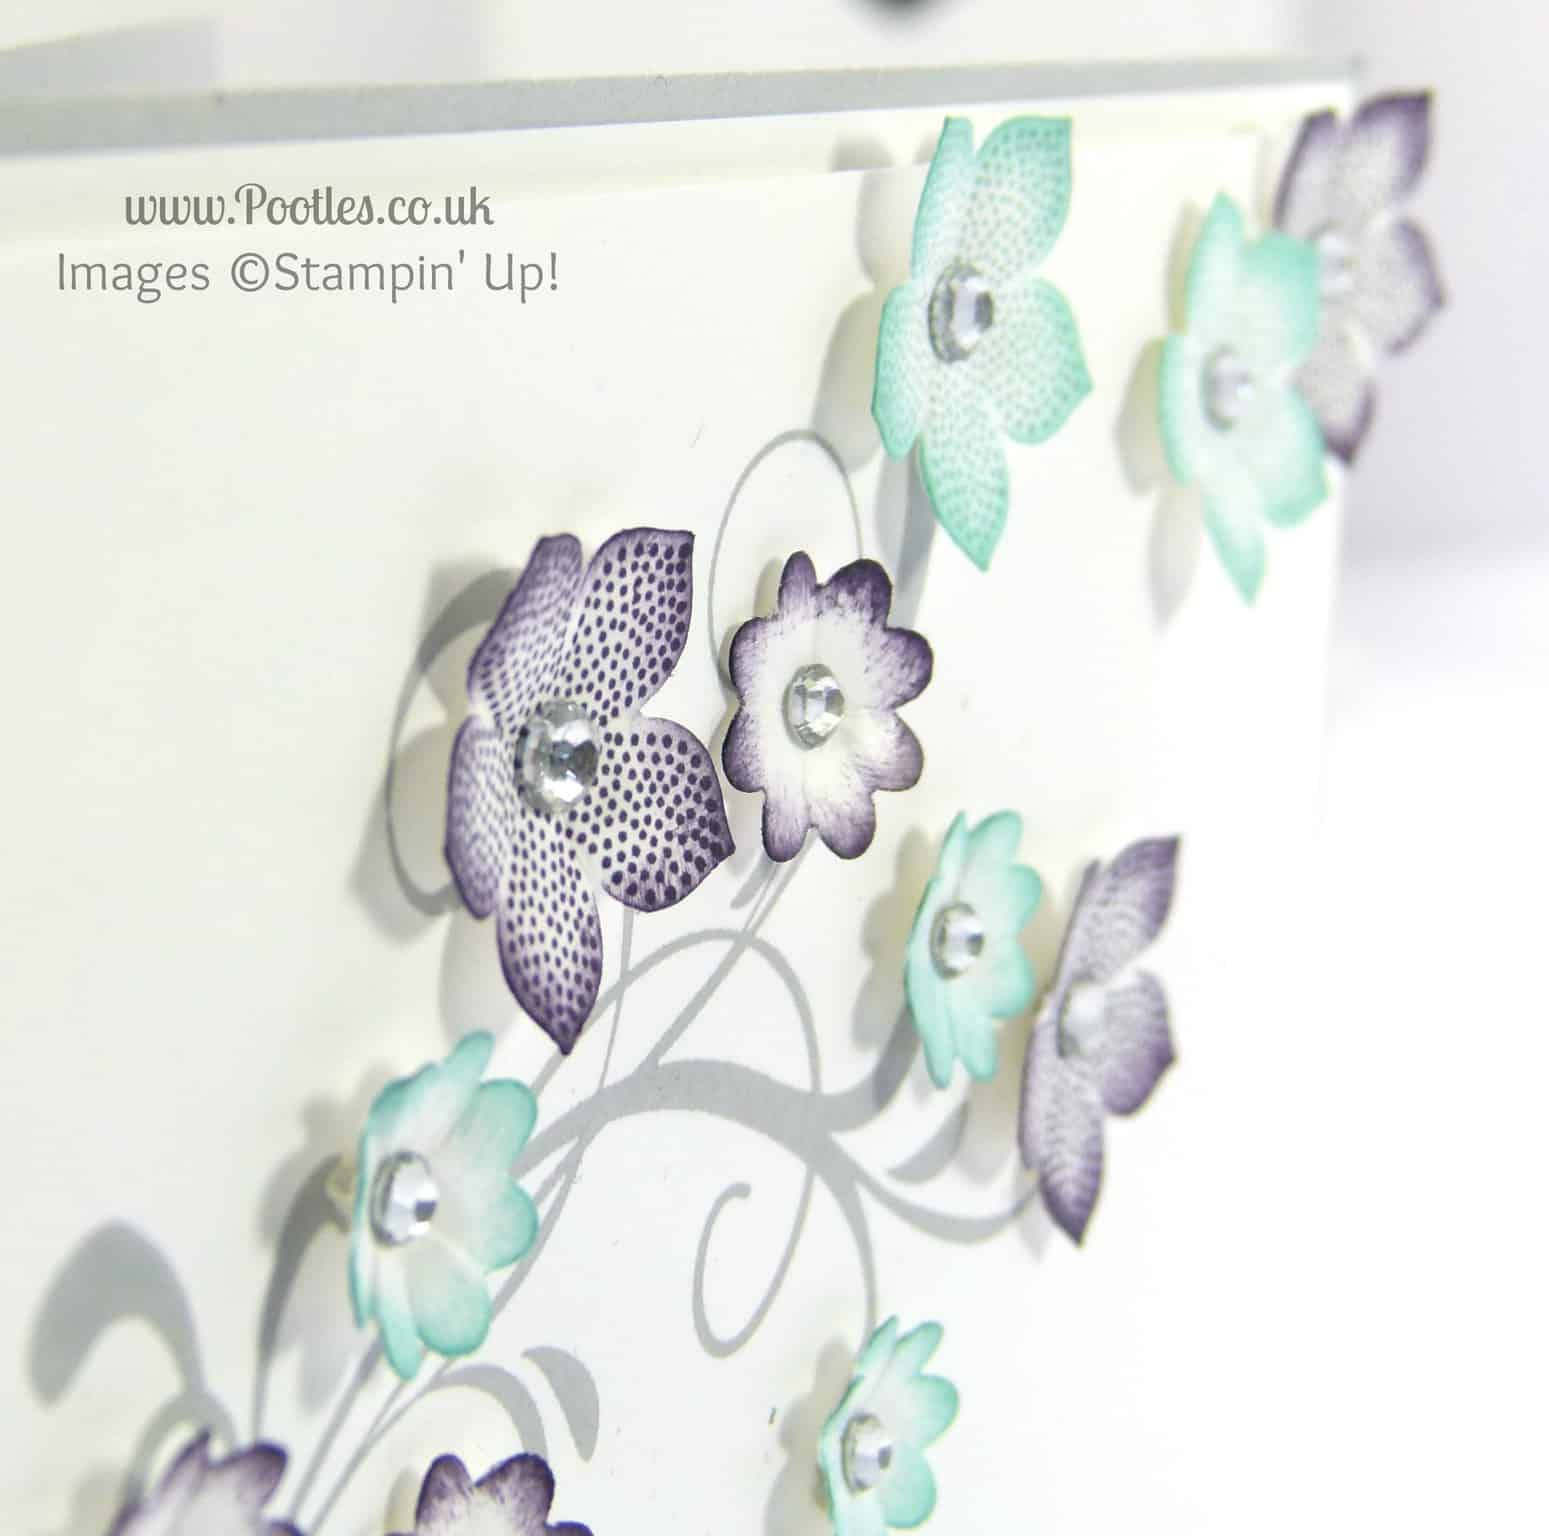 Stampin' Up! UK Demonstrator Pootles - Coastal Cabana Meets Elegant Eggplant close up